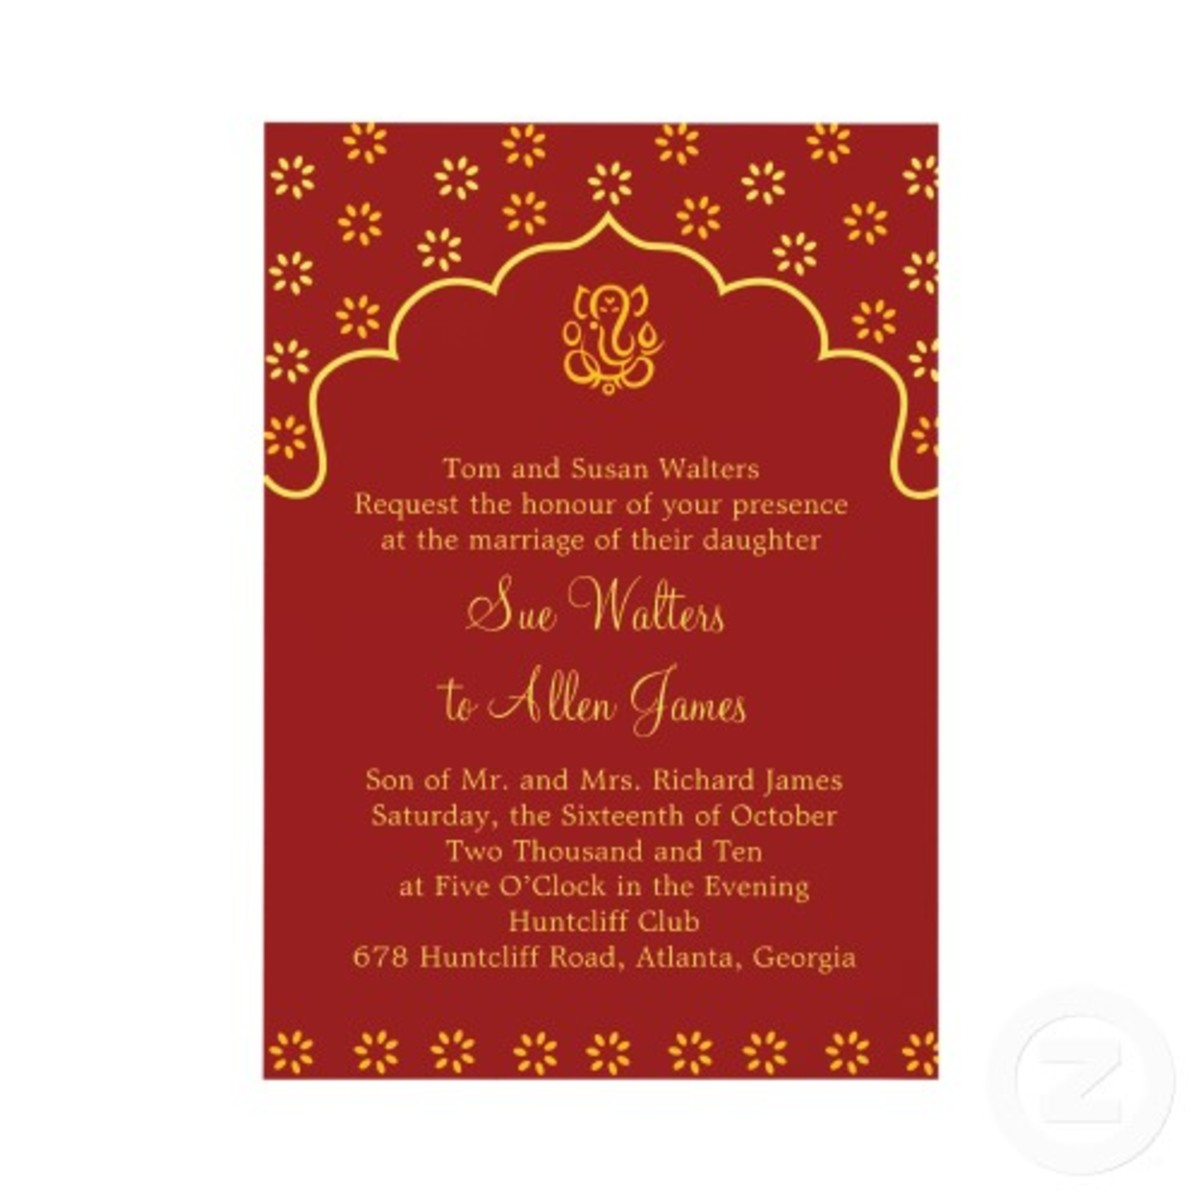 Red and Gold Indian Wedding Invitation